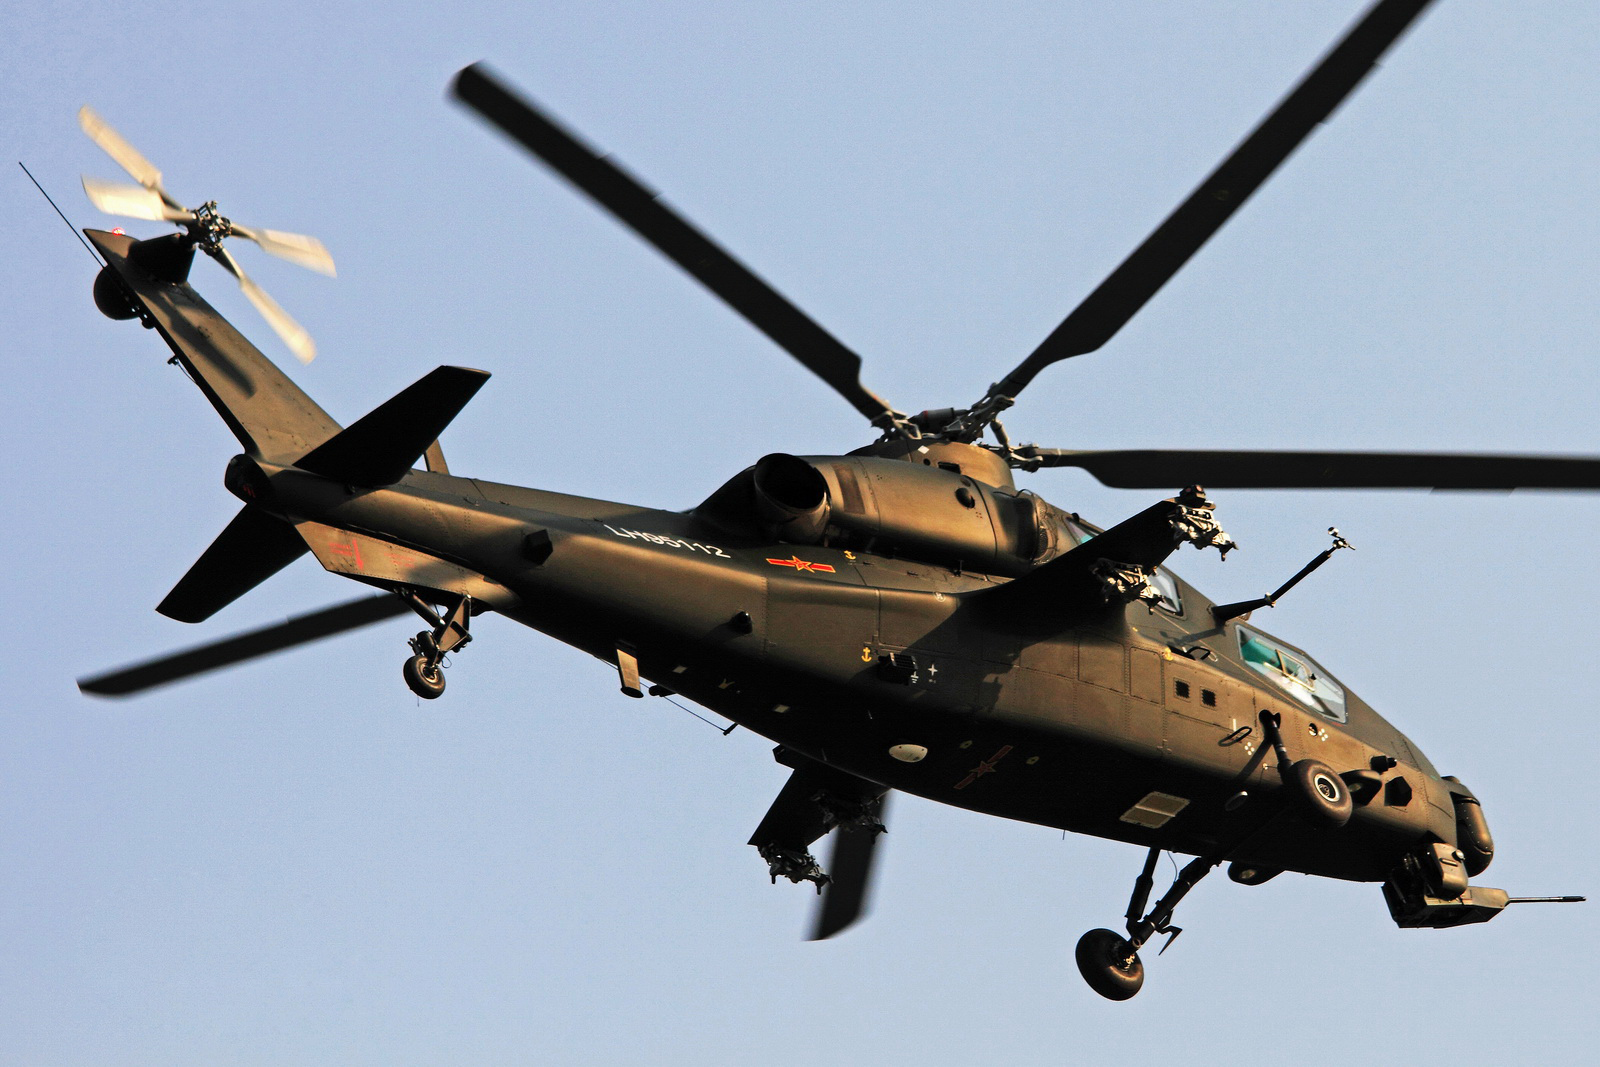 chine Z-10+Zhi-10+%2528Z-10%2529+attack+helicopter+People%2527s+Liberation+Army+%2528PLA%2529+gunship+has+been+developed+by+Changhe+Aircraft+Industries+Group+%2528CAIG%2529+and+China+Helicopter+Research+and+Development+Institute+%2528CHRDI%2529%252C+missile++%25286%2529